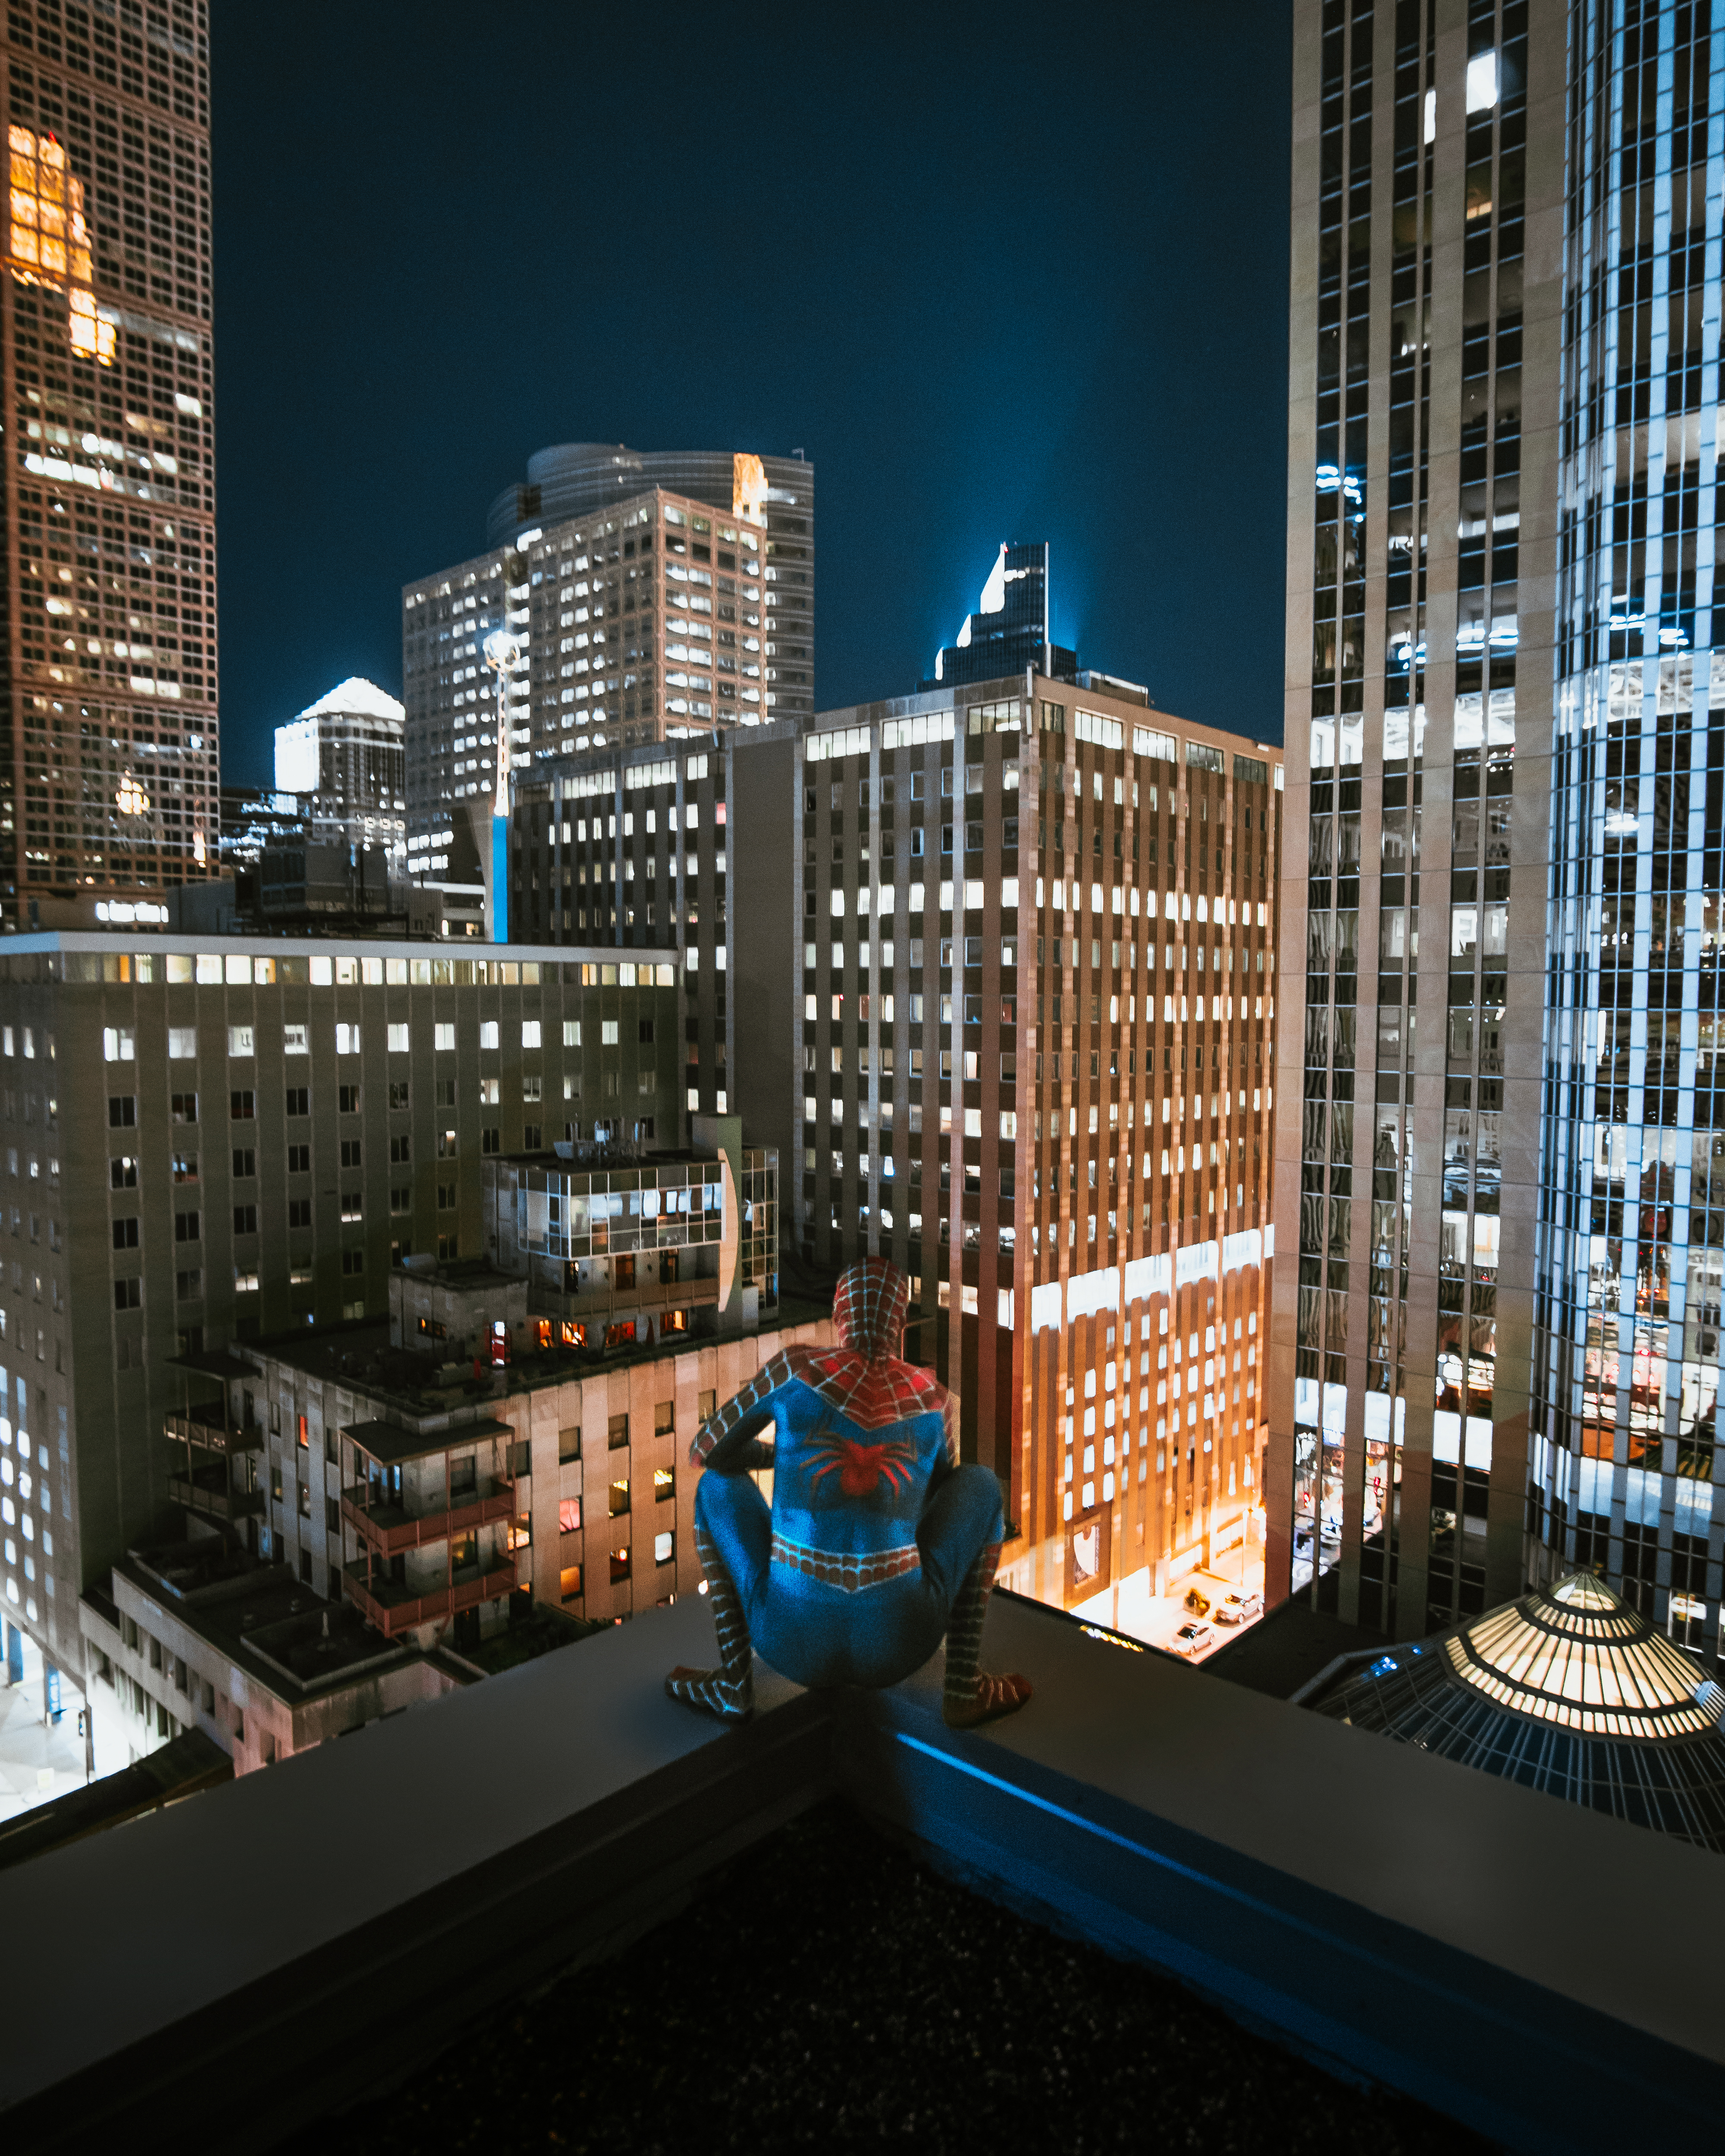 Spider Man on Top of Building